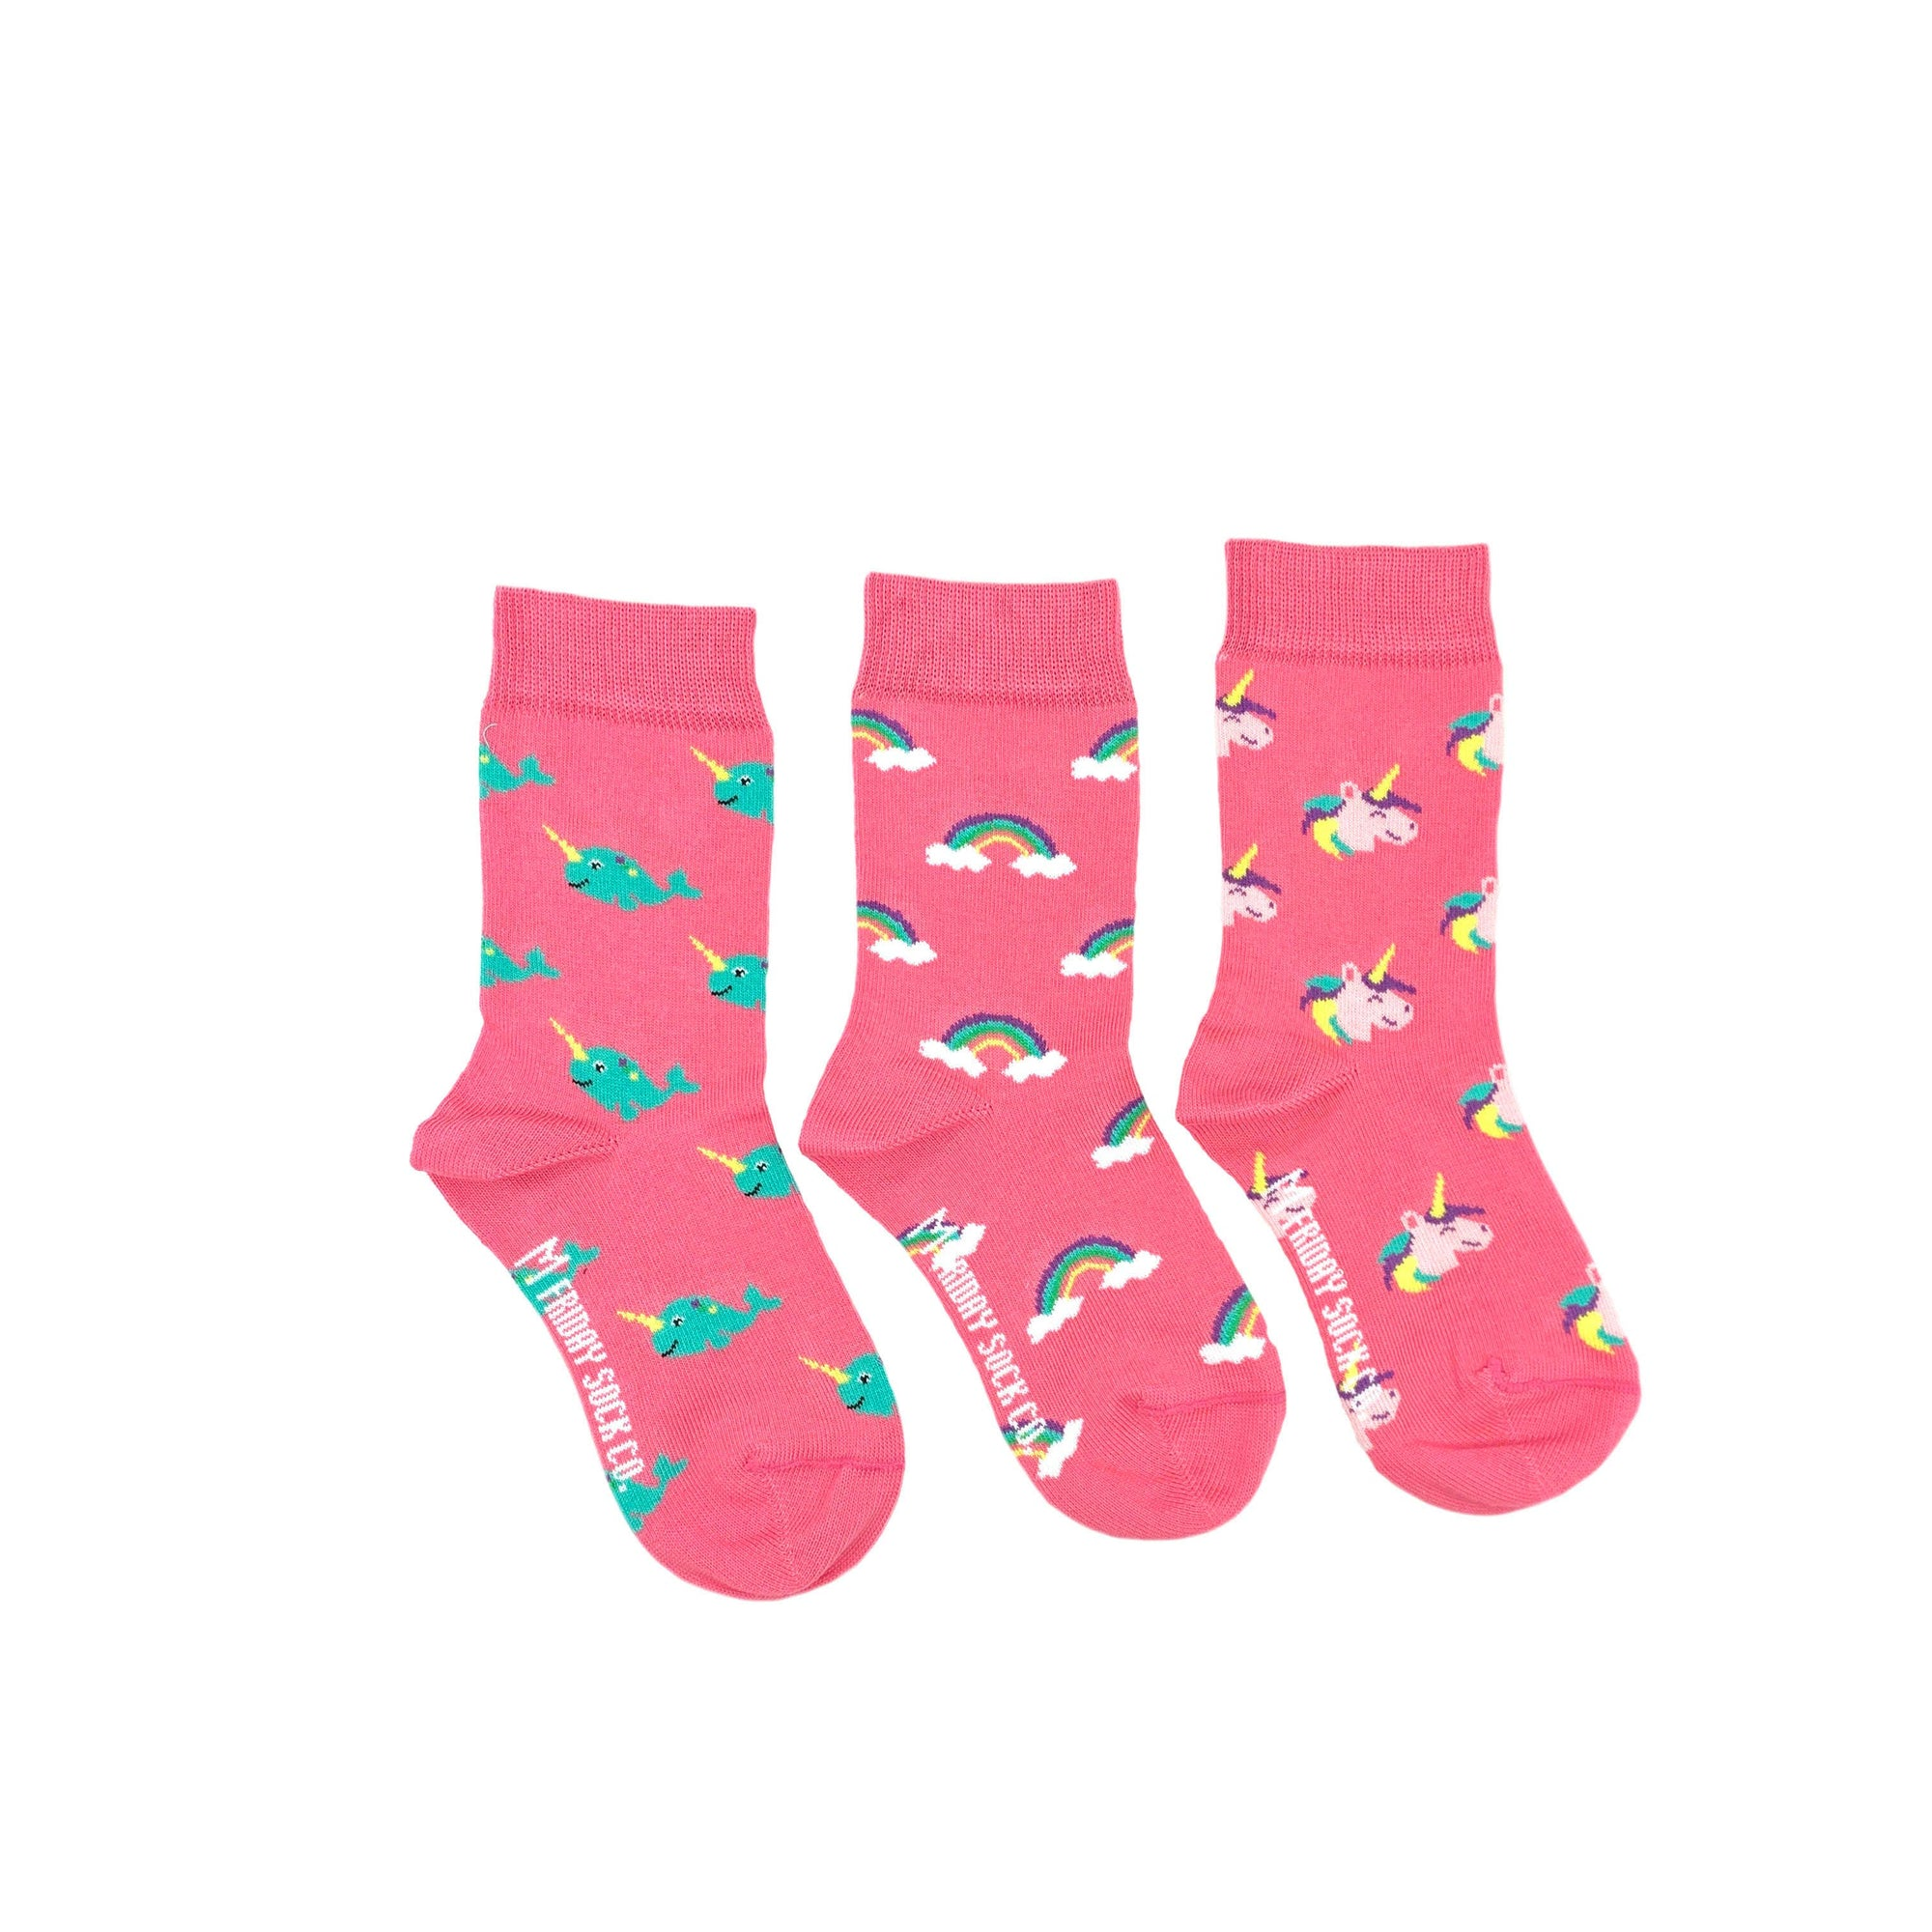 Friday Sock Co. Kid's Socks | Rainbow Unicorn Narwhal | Mismatched